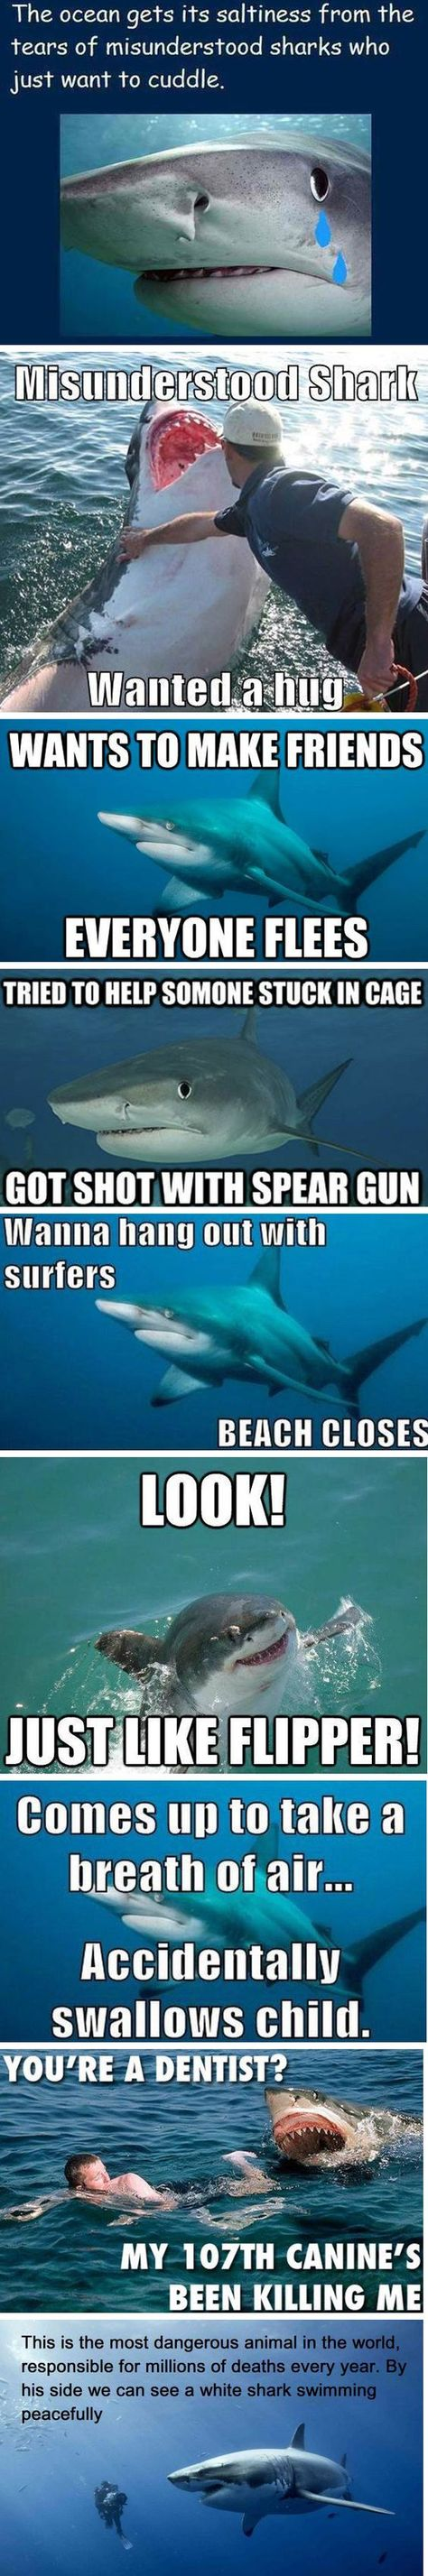 Sand tiger shark information amp pictures of sand tiger sharks - Best 10 Shark Attack Pictures Ideas On Pinterest Shark Week 2014 Watermelon Fruit Displays And Watermelon Shark Carving